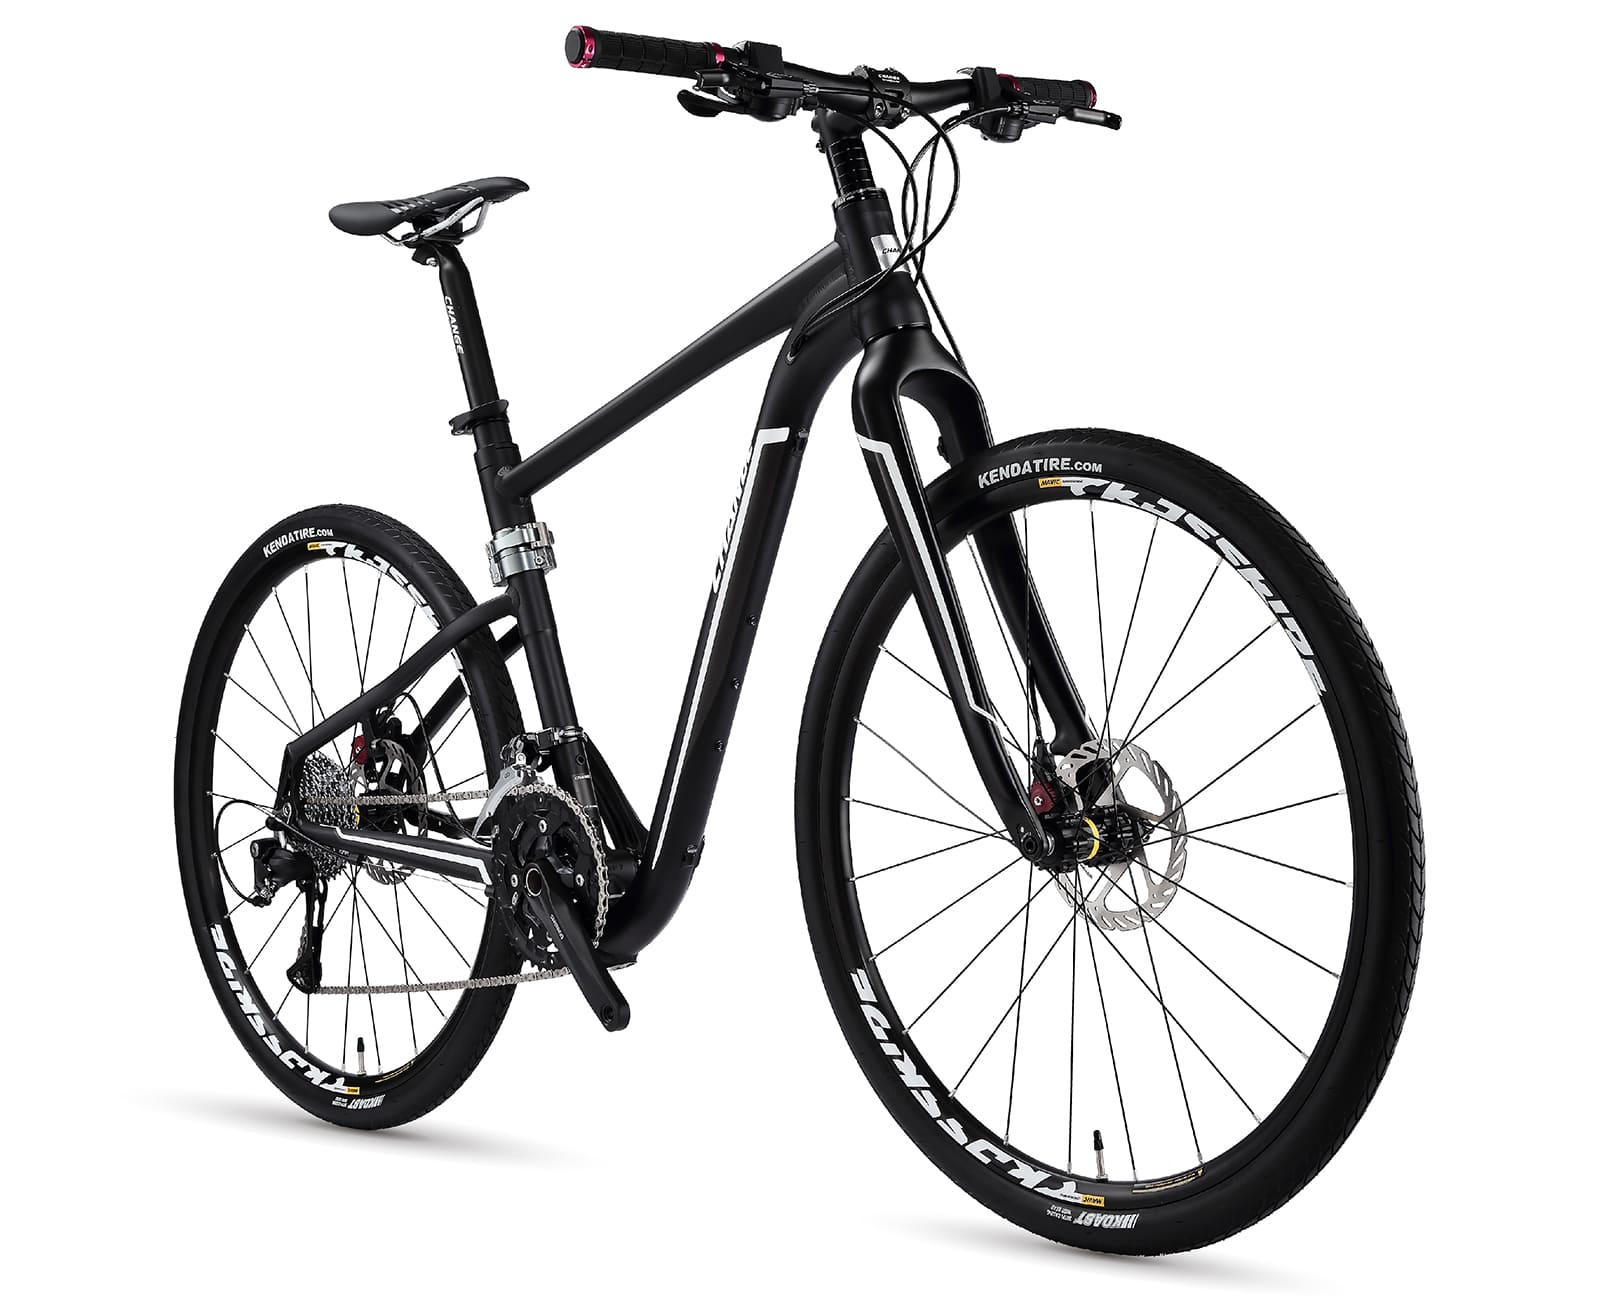 27.5 hybrid folding bike changebike df-811k